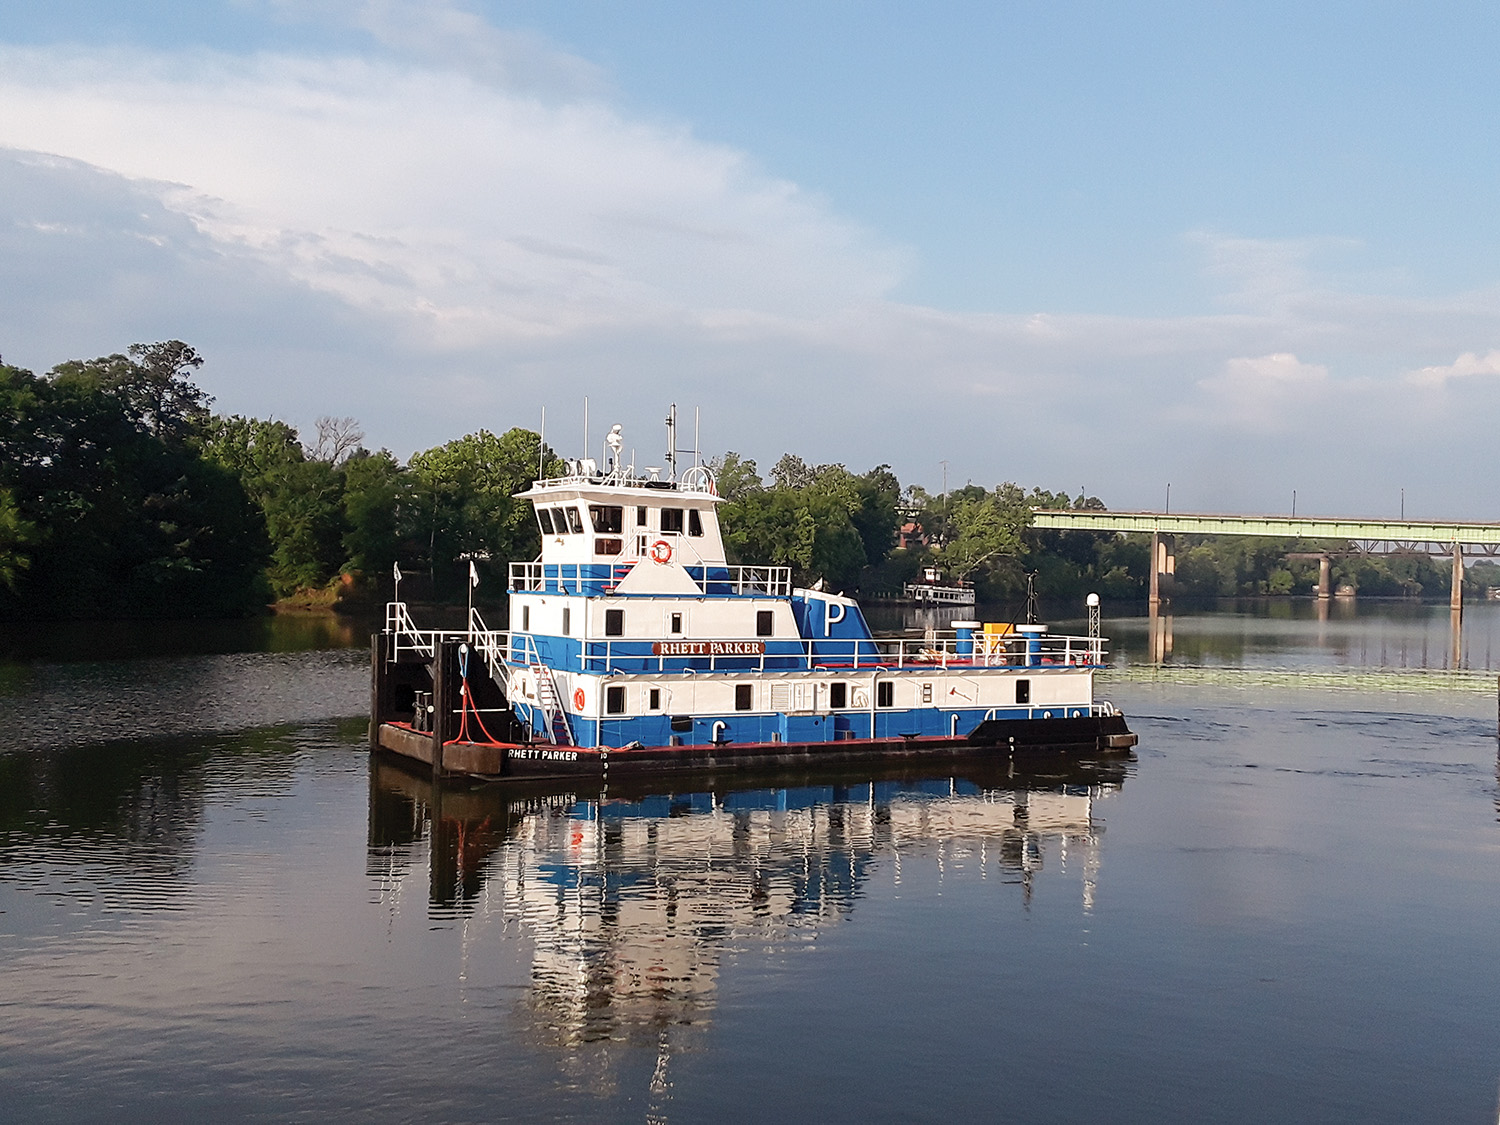 The mv. Rhett Parker was built in 1982 by Mississippi Marine Towboat Corporation.